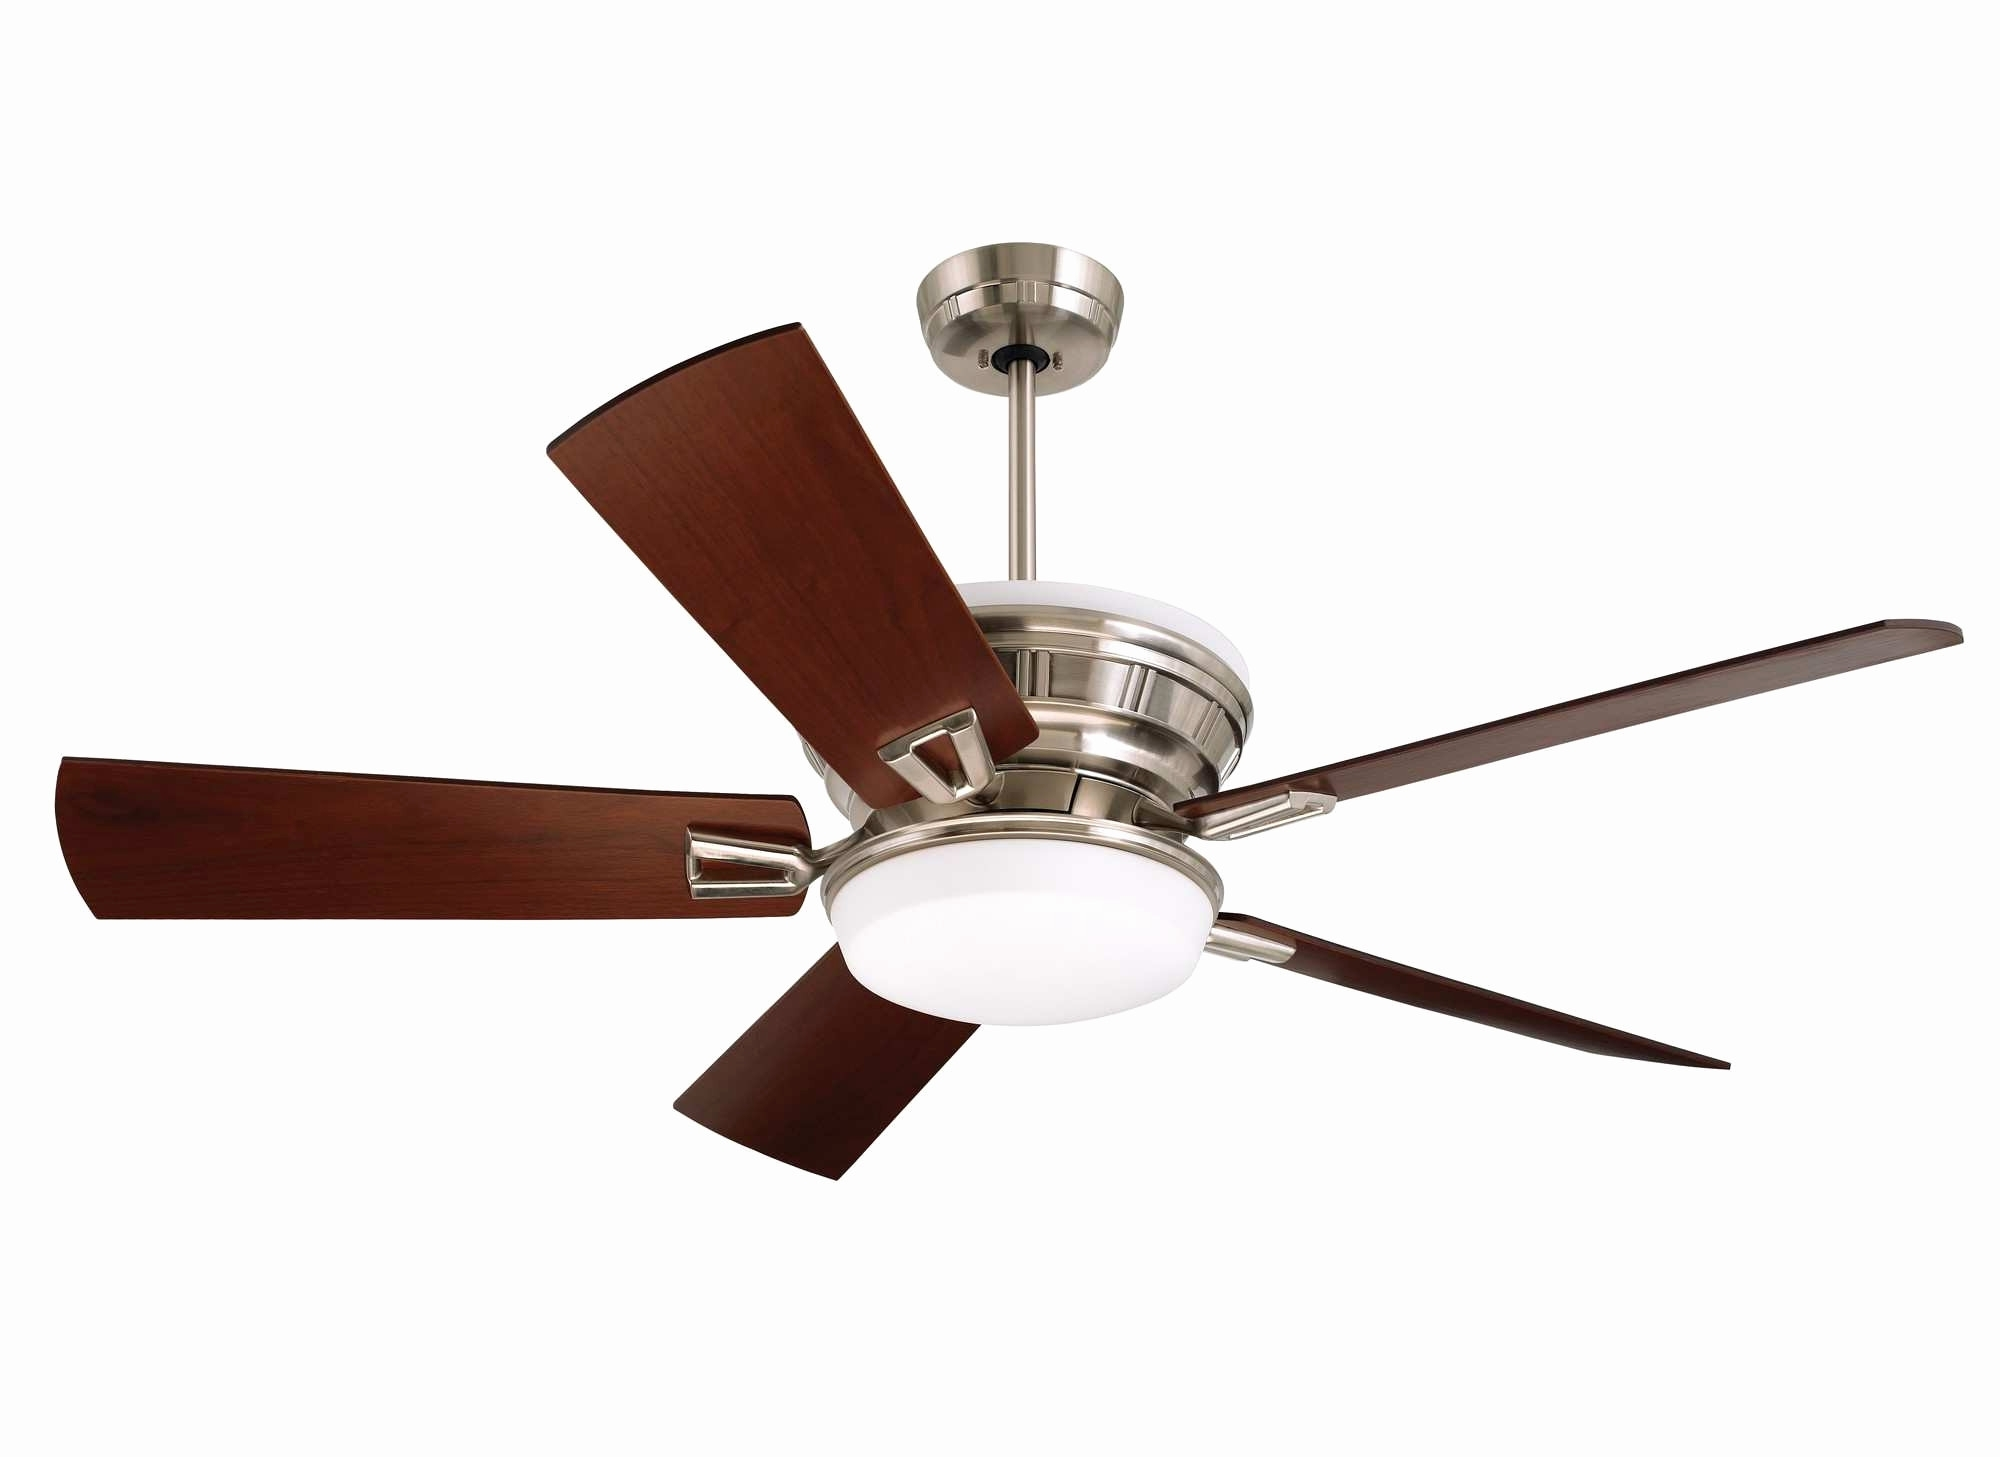 Famous Best Energy Star Ceiling Fans Luxury Home Depot Outdoor Ceiling Fans Inside Energy Star Outdoor Ceiling Fans With Light (View 19 of 20)